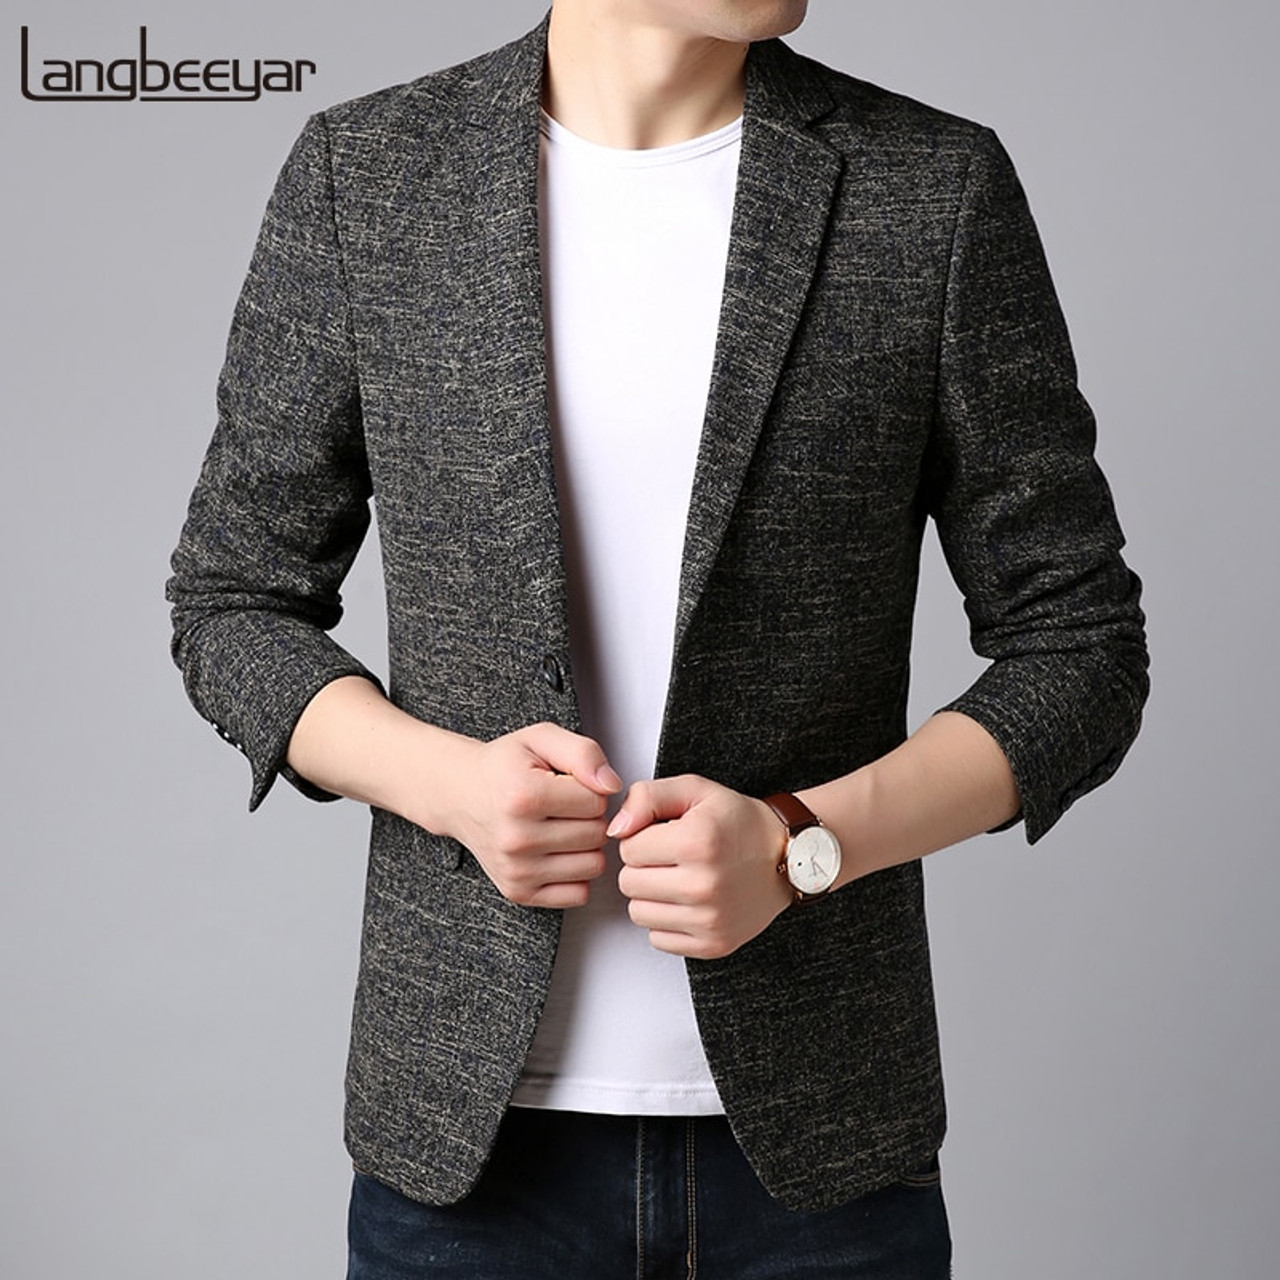 8a84c78a922d 2018 New Fashion Brand Blazer Jacket Men Korean Slim Fit Suits Coat Pattern  Pattern Party Dress ...